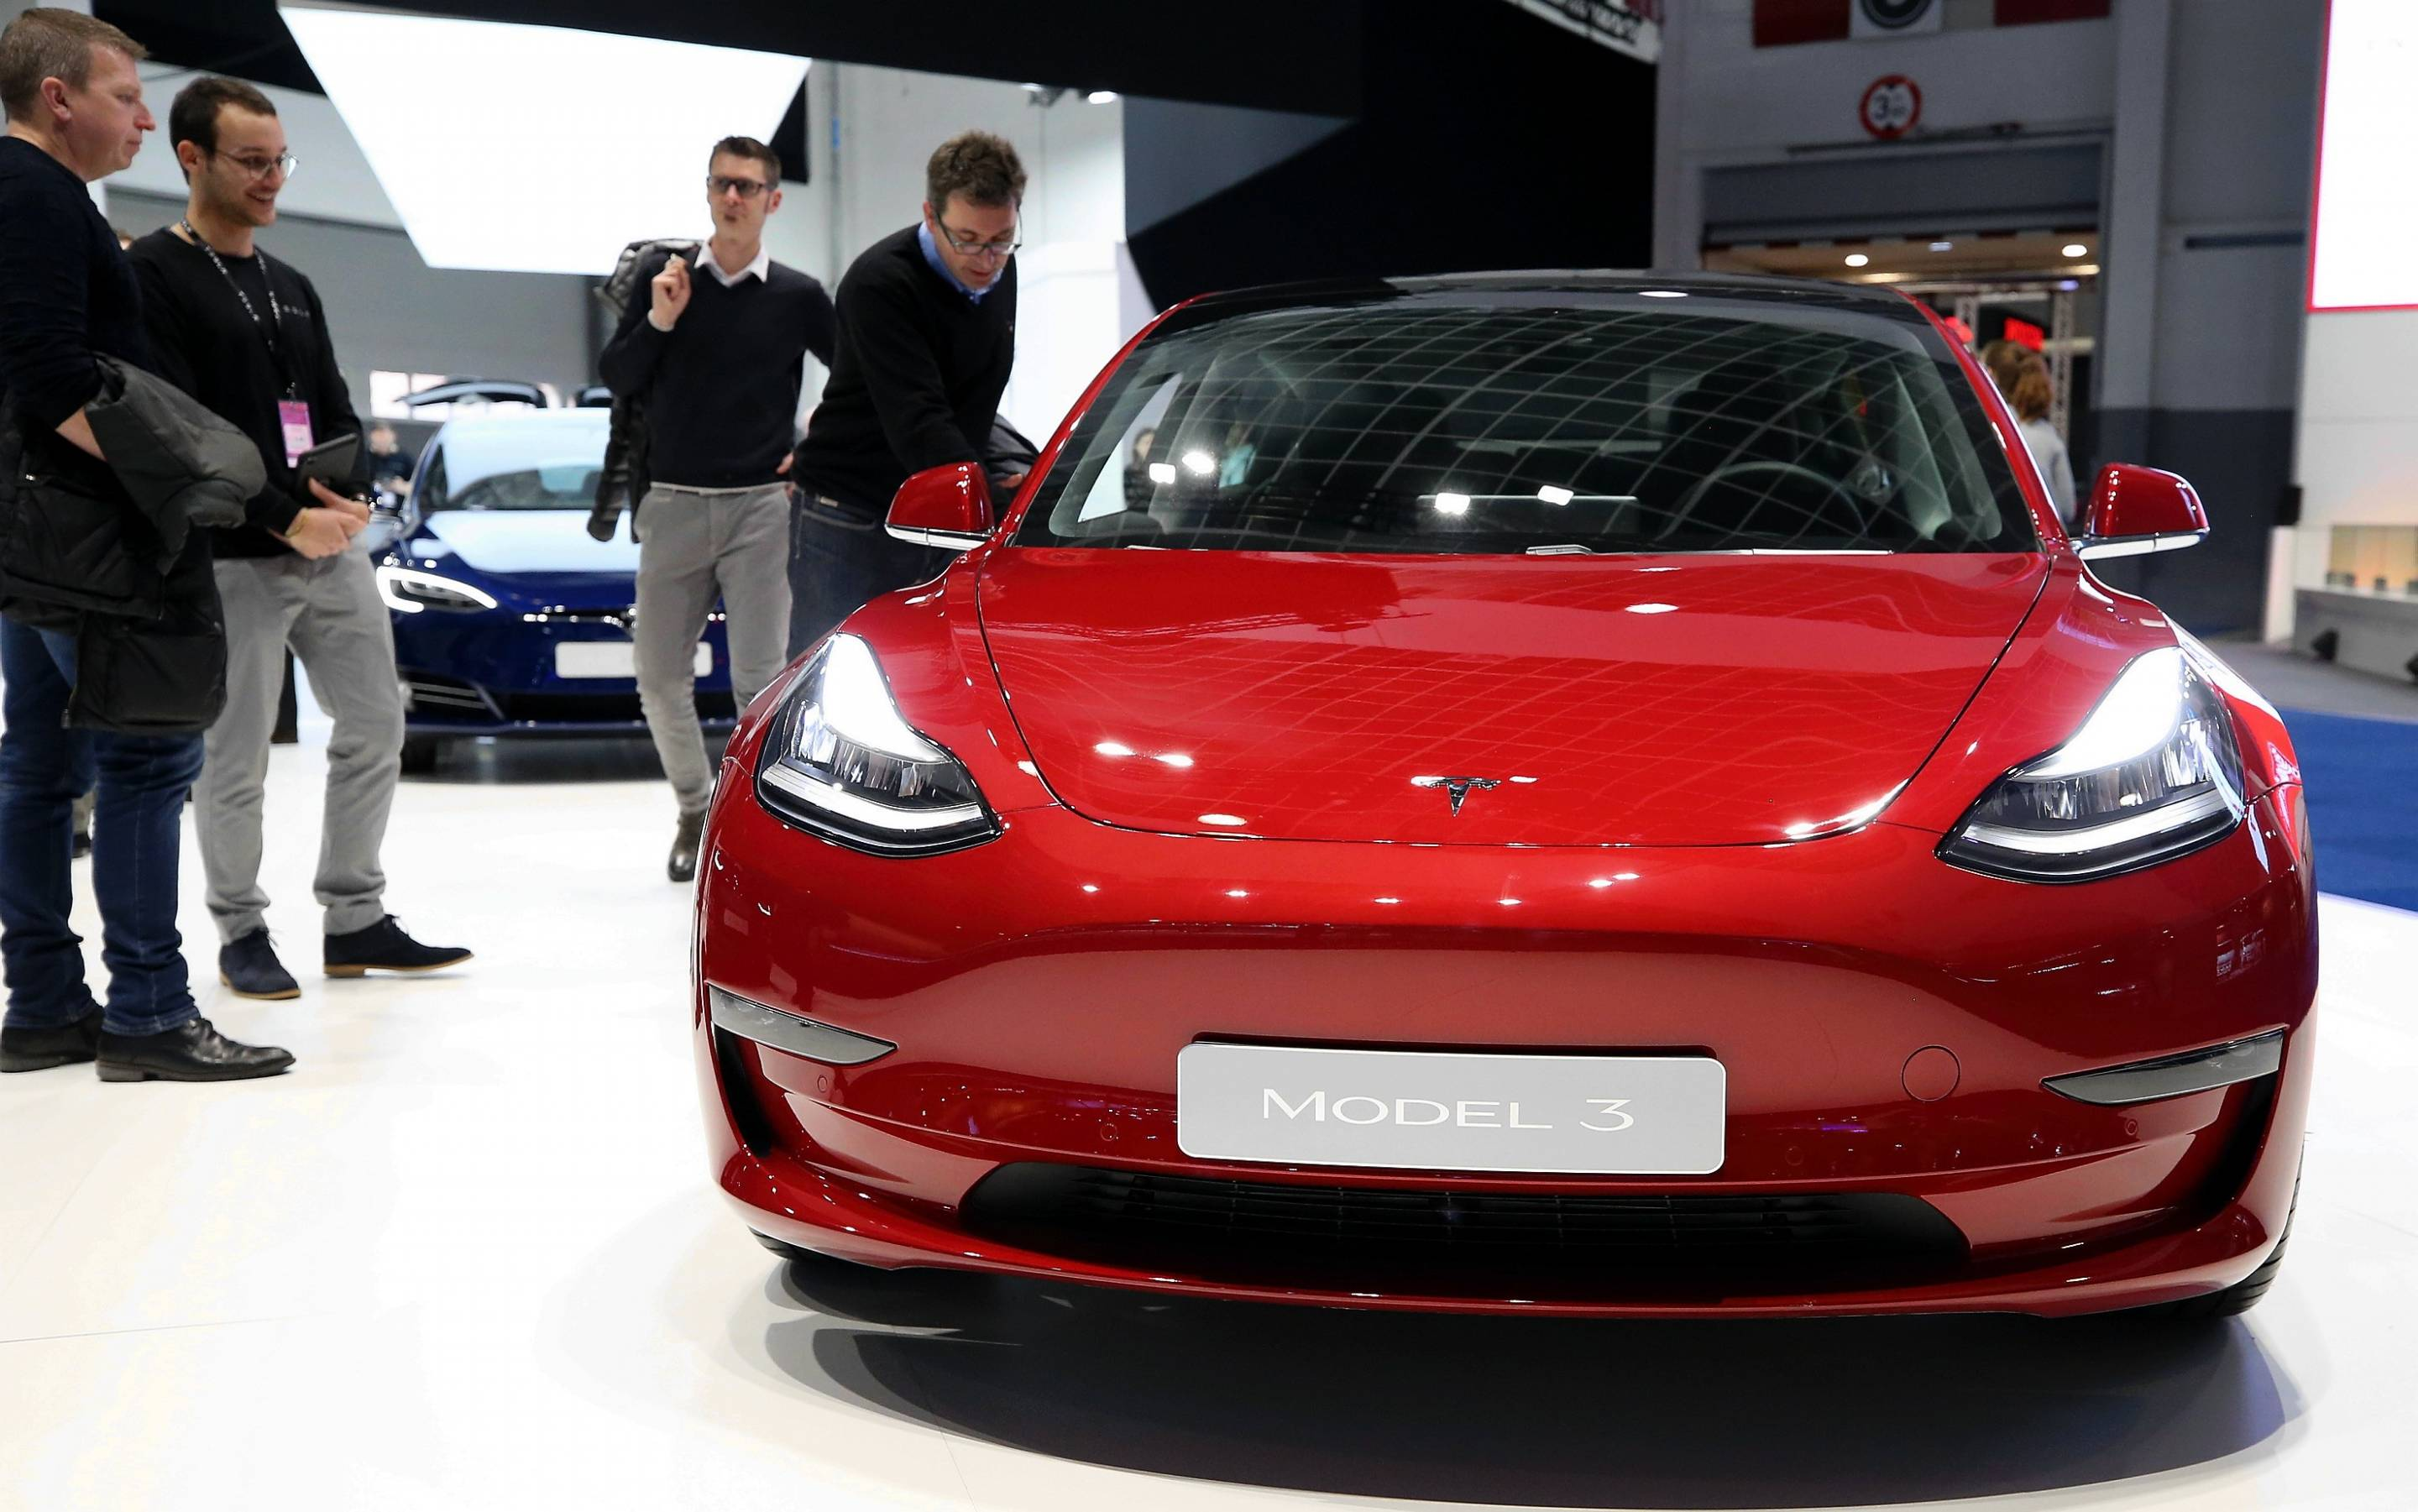 Ahead of 97th Brussels Motor Show